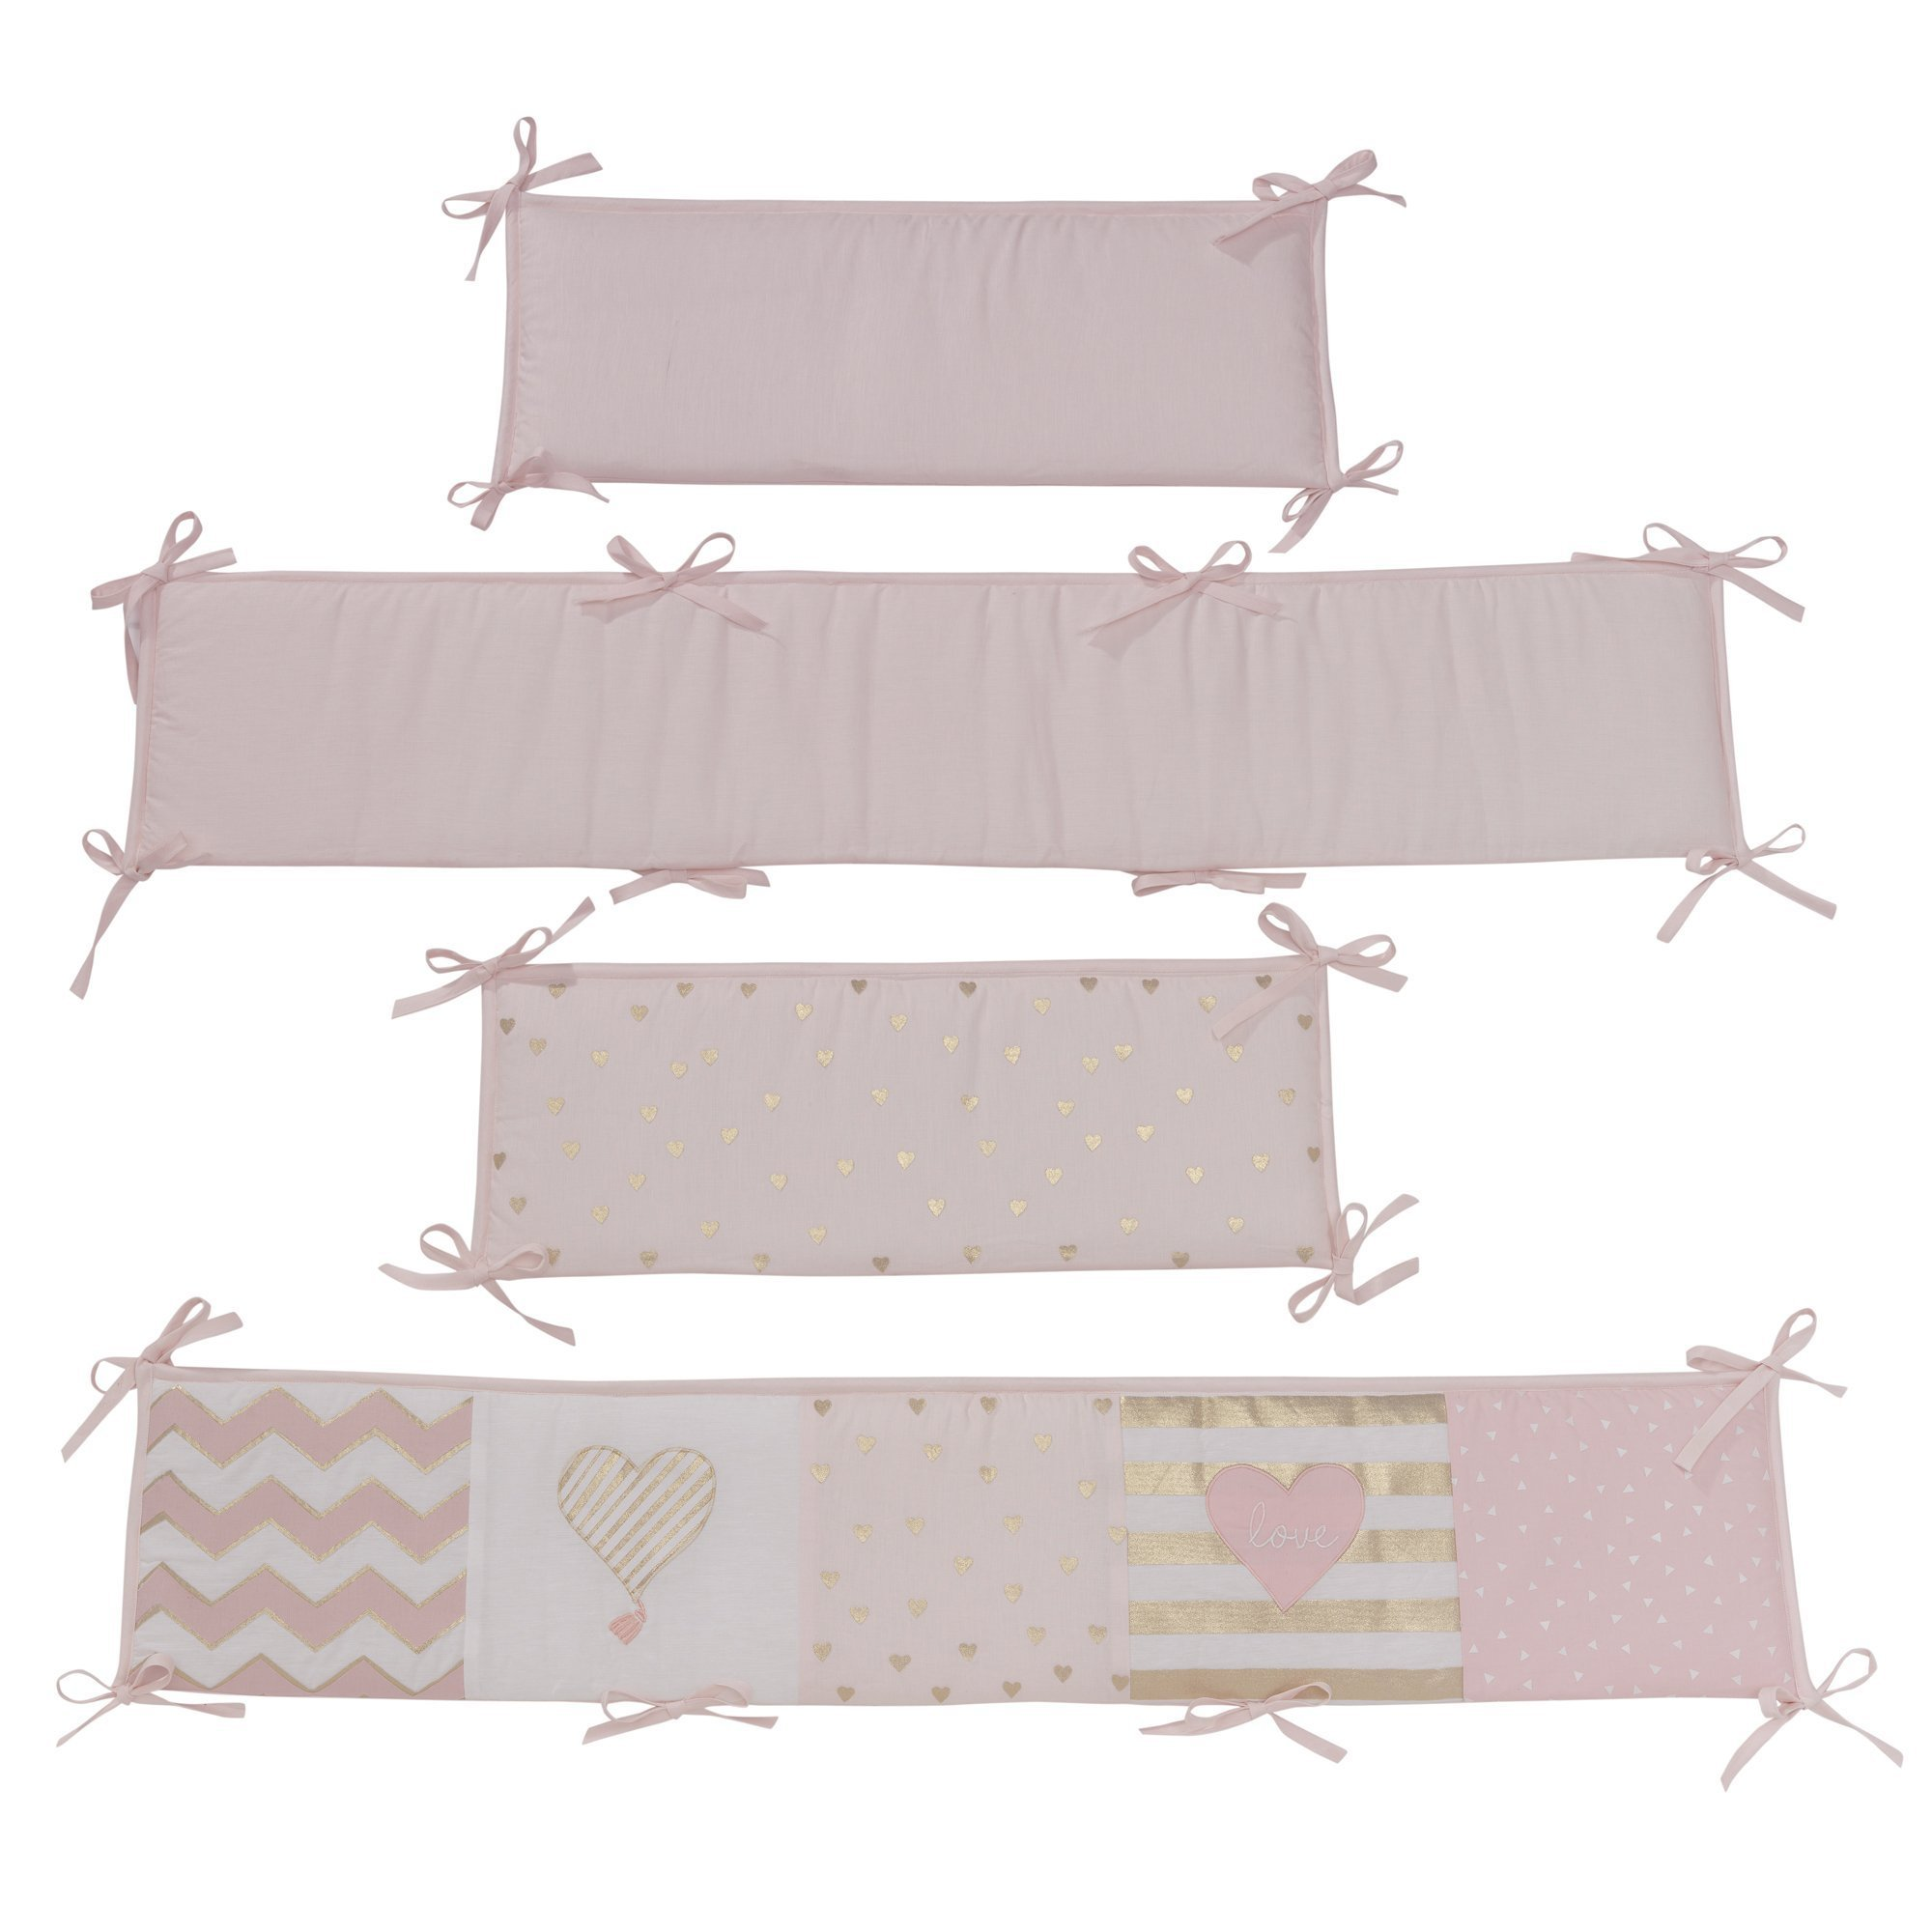 Lambs & Ivy Baby Love 4-Piece Crib Bumper - Pink/Gold/White with Hearts by Lambs & Ivy (Image #3)